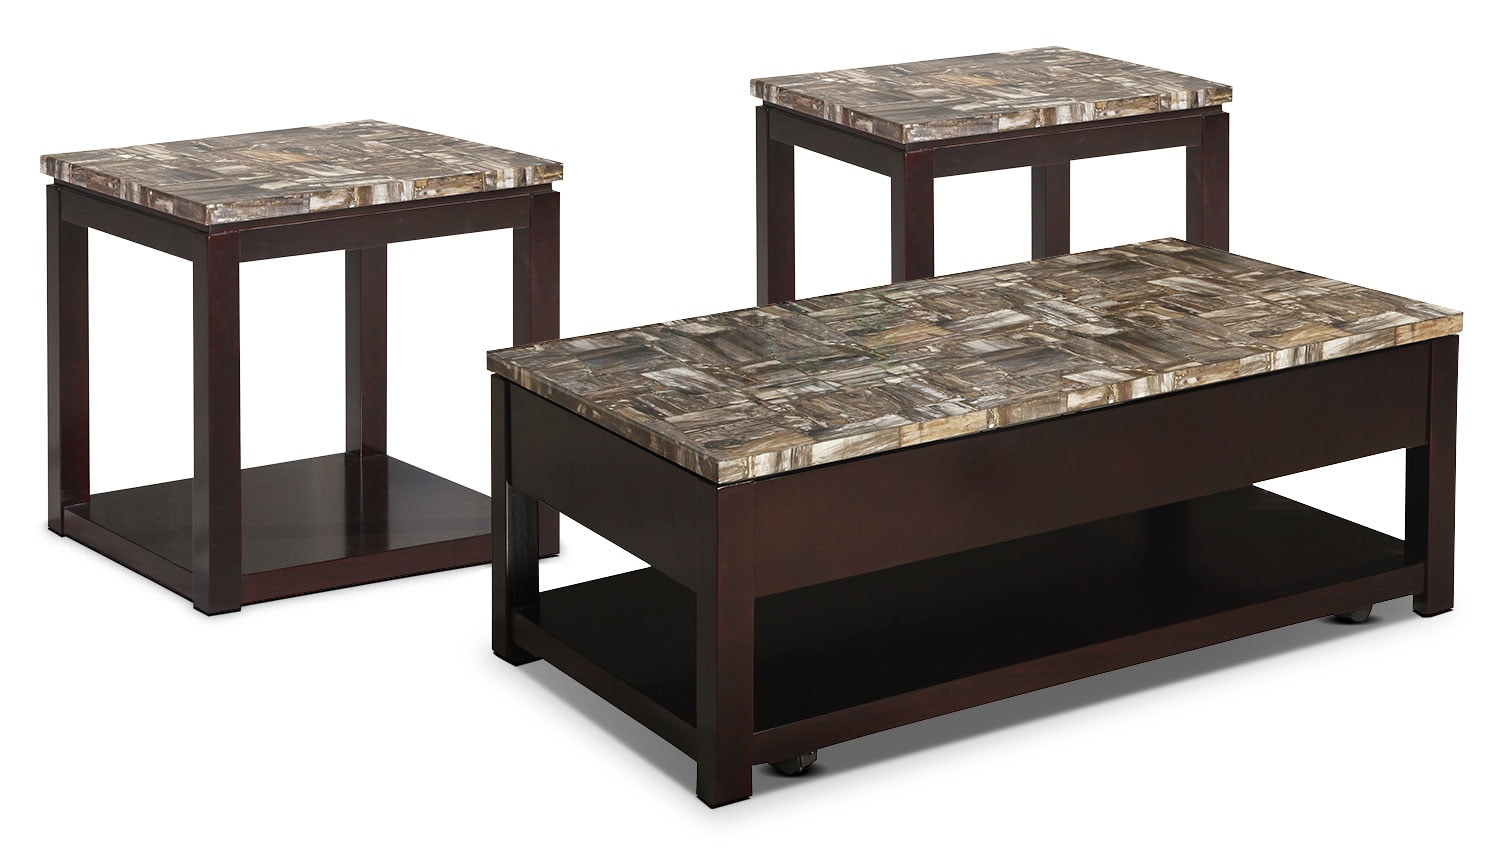 Sicily 3-Piece Coffee and Two End Tables Package – Brown